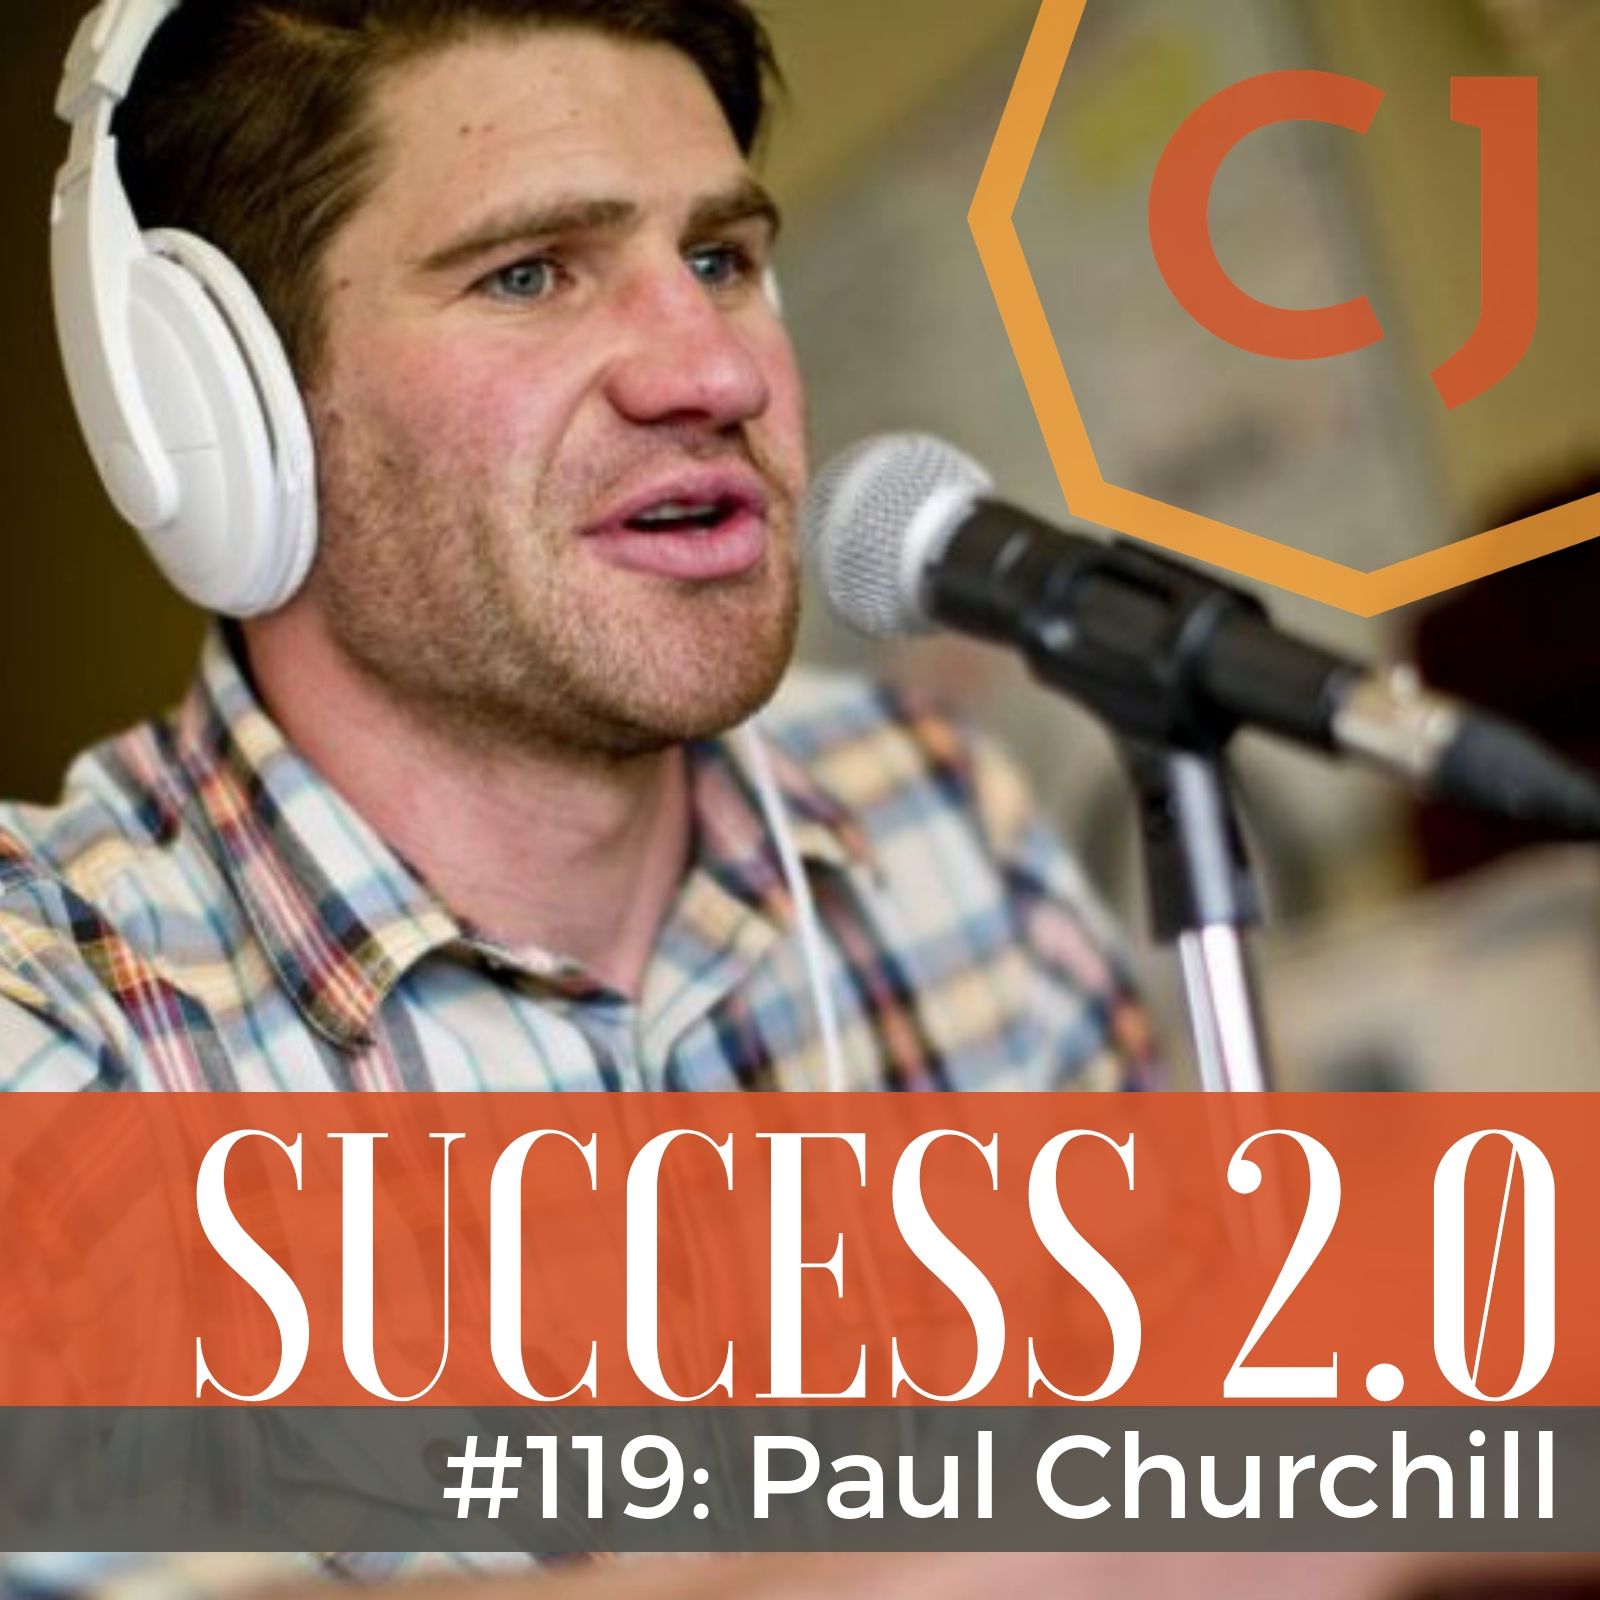 Success-2.0-119-Paul-Churchill-Recovery-Elevator-